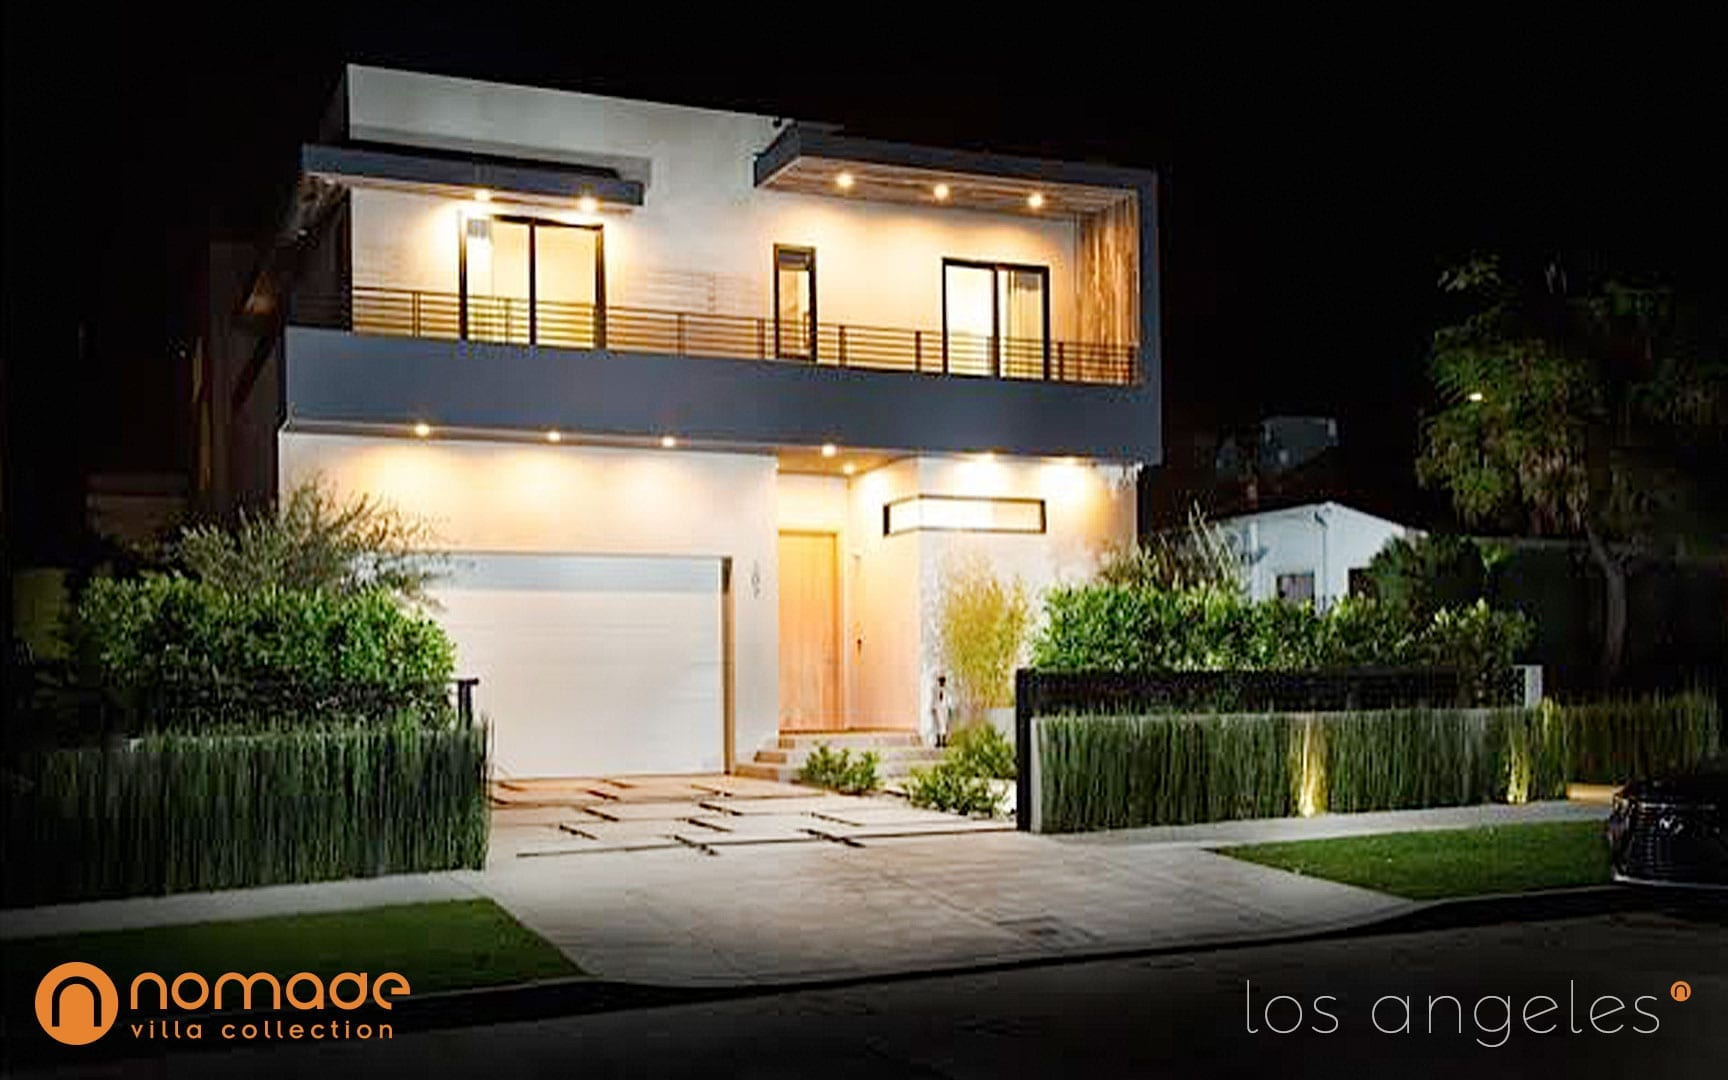 Casa Sycamore Los Angeles Mansion Rental | Nomade Villa Collection